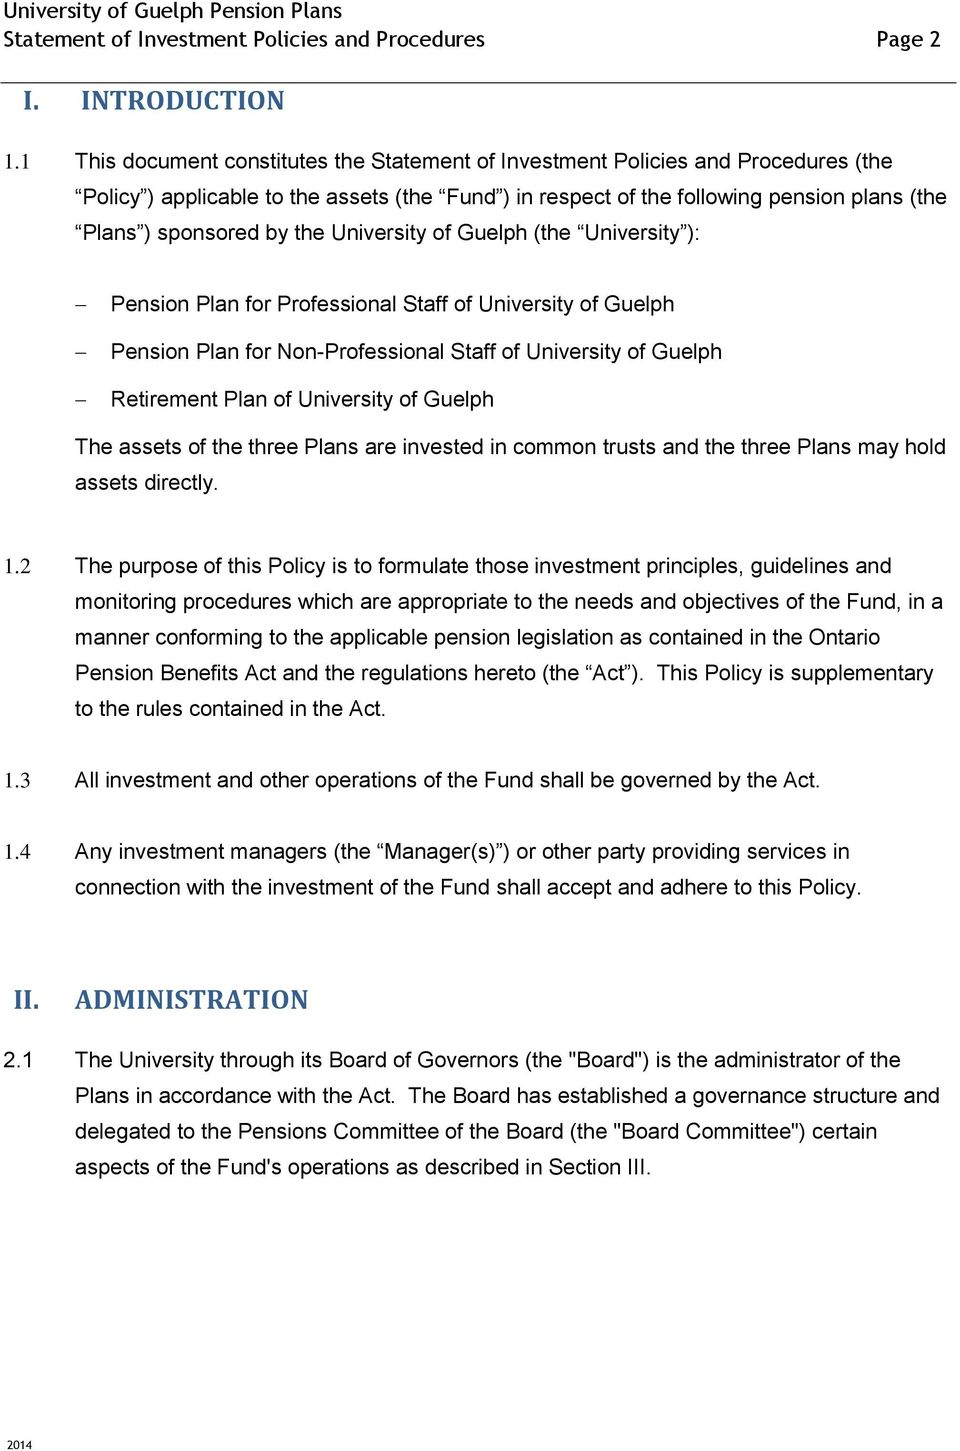 the University of Guelph (the University ): Pension Plan for Professional Staff of University of Guelph Pension Plan for Non-Professional Staff of University of Guelph Retirement Plan of University